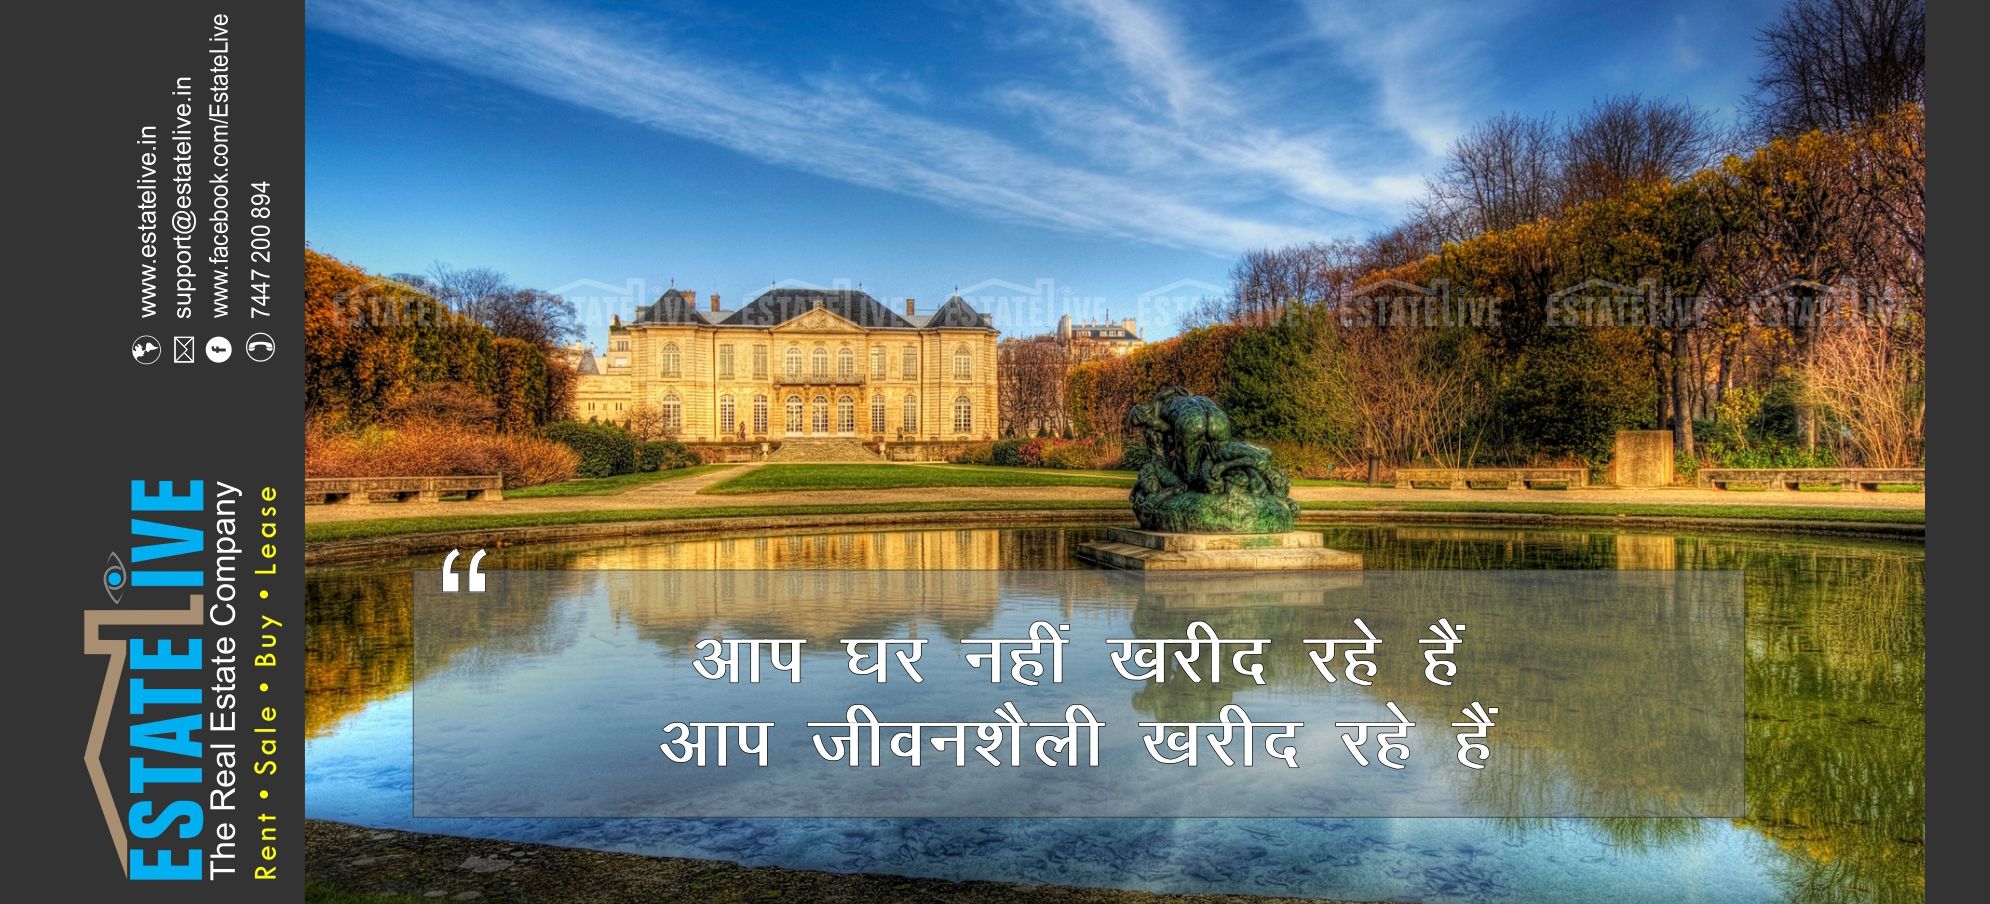 Real Estate Quotes Hindi-12 - You are not buying a house